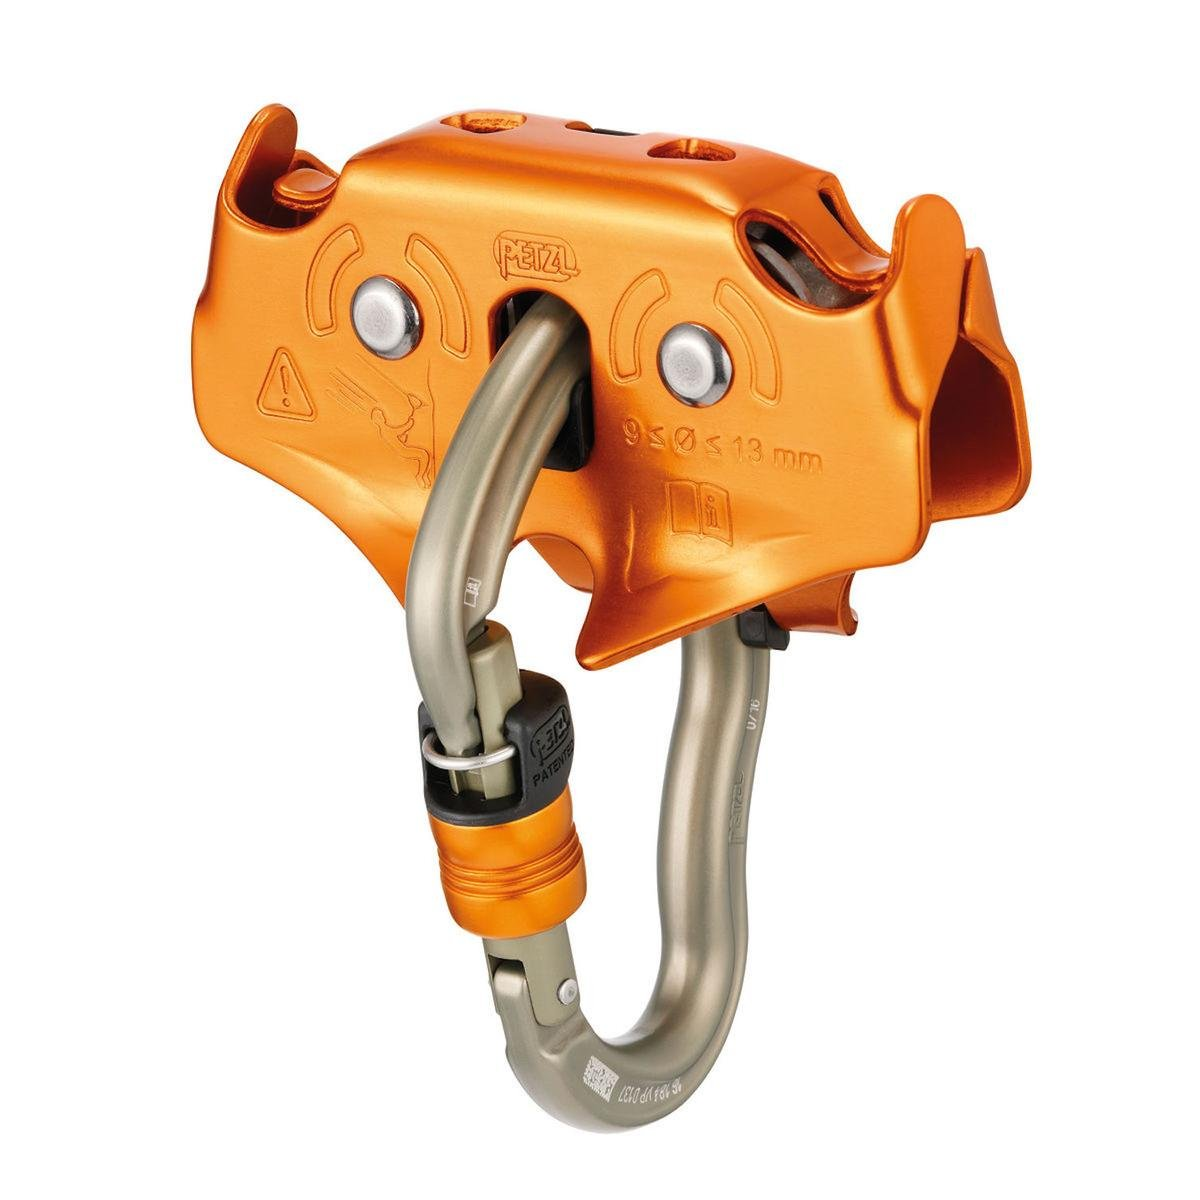 Petzl - TRAC PLUS pulley